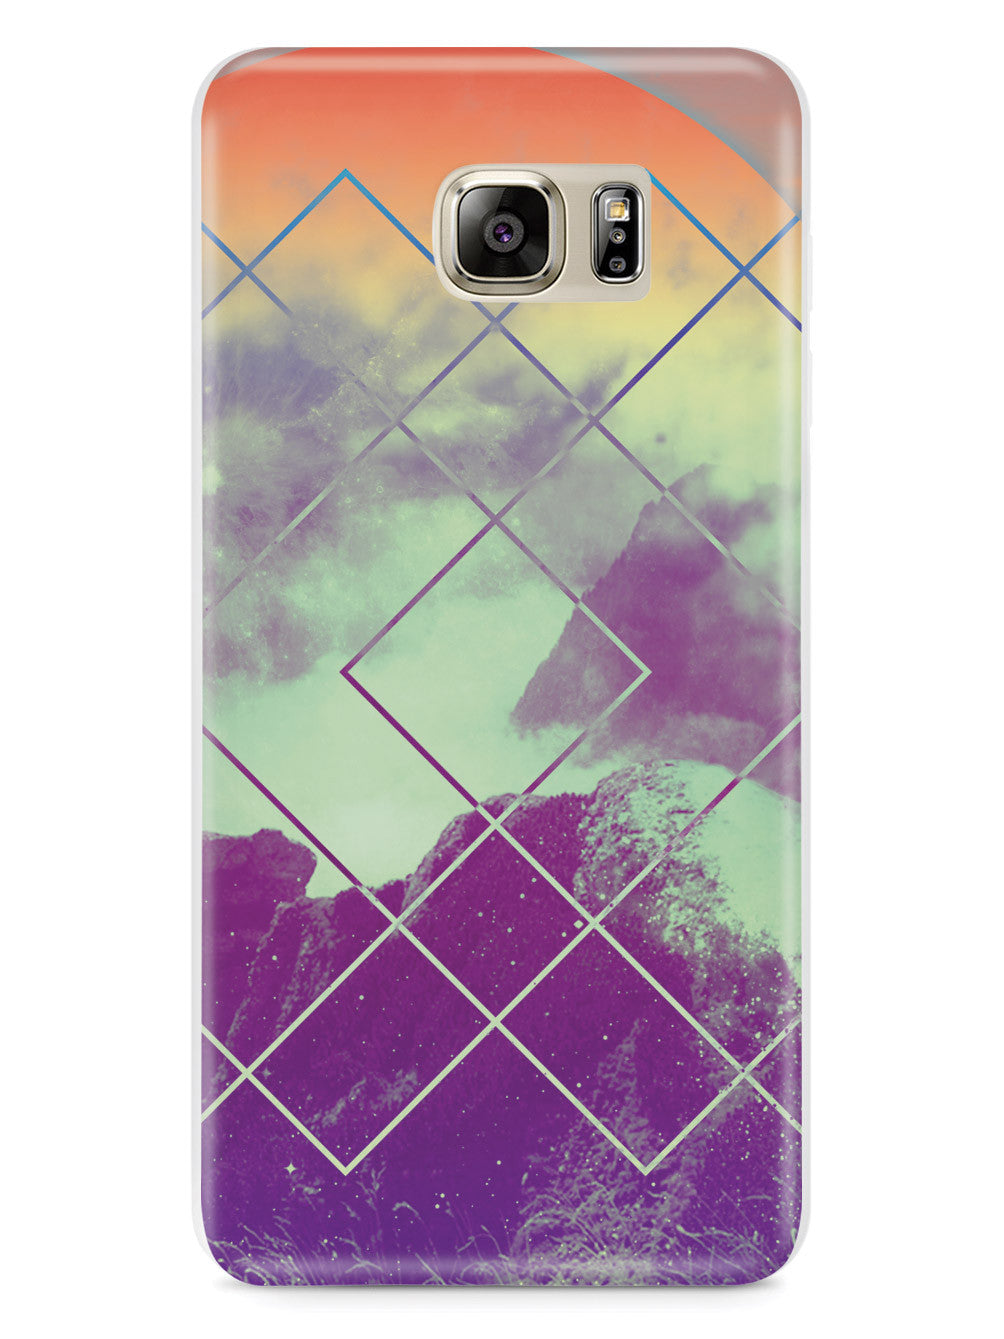 Abstract Space and Mountains Case